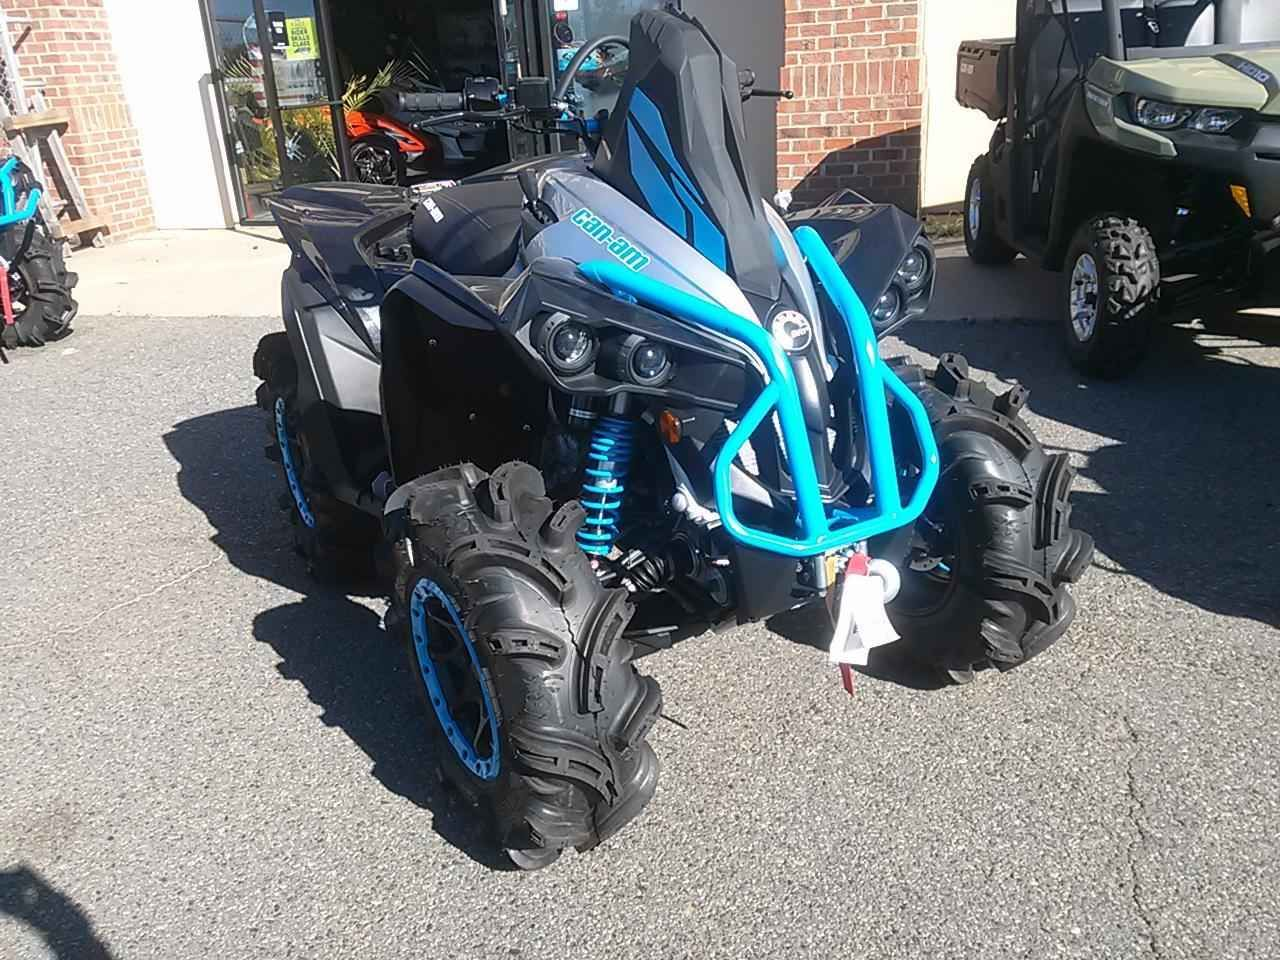 New 2016 Can Am Renegade 1000 Xmr Atvs For Sale In North Carolina 2016 Can Am Renegade 1000 Xmr Highlights Rotax Snorkeled V Twin Engin Can Am Atv Warn Winch